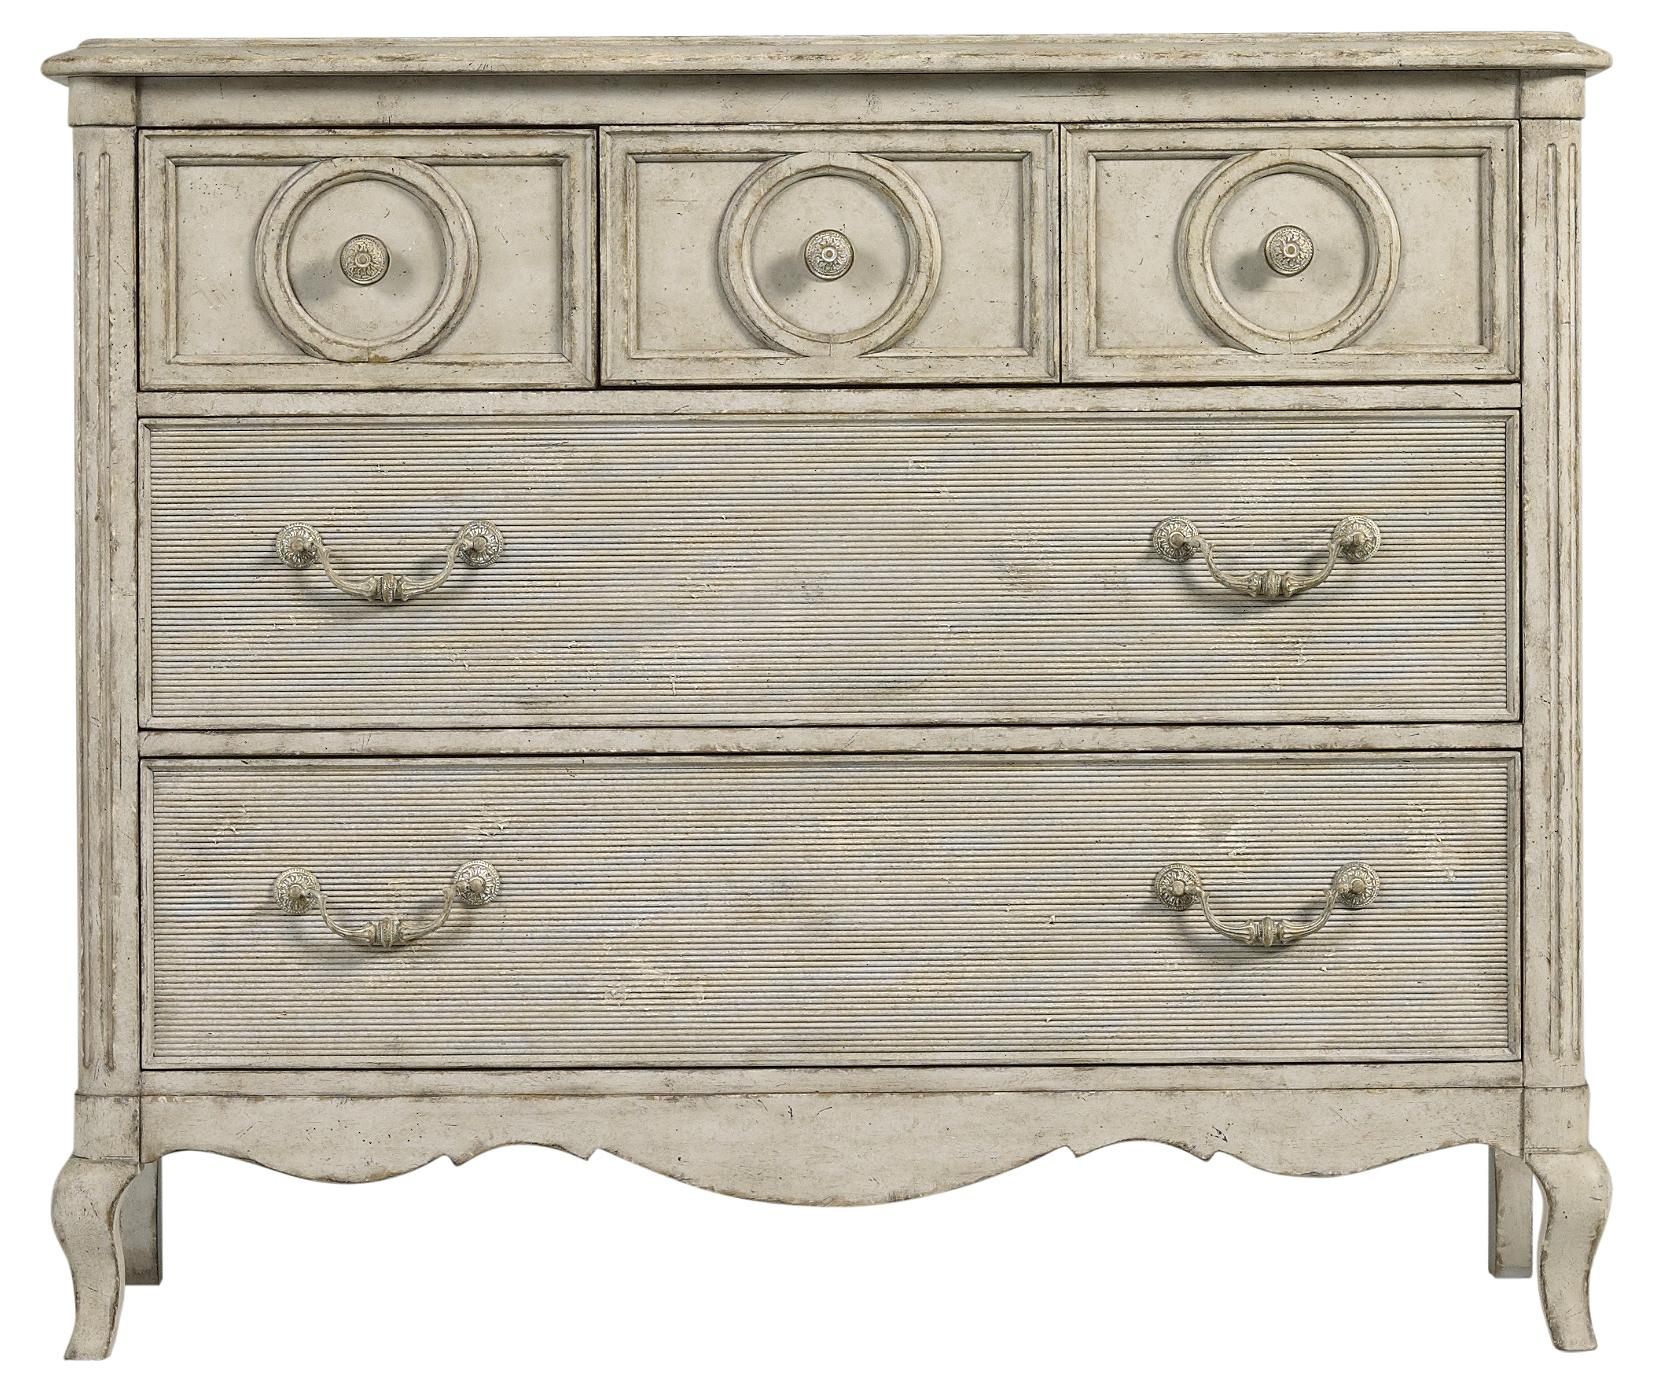 Stanley Furniture Arrondissement Rond Media Chest - Item Number: 222-25-11